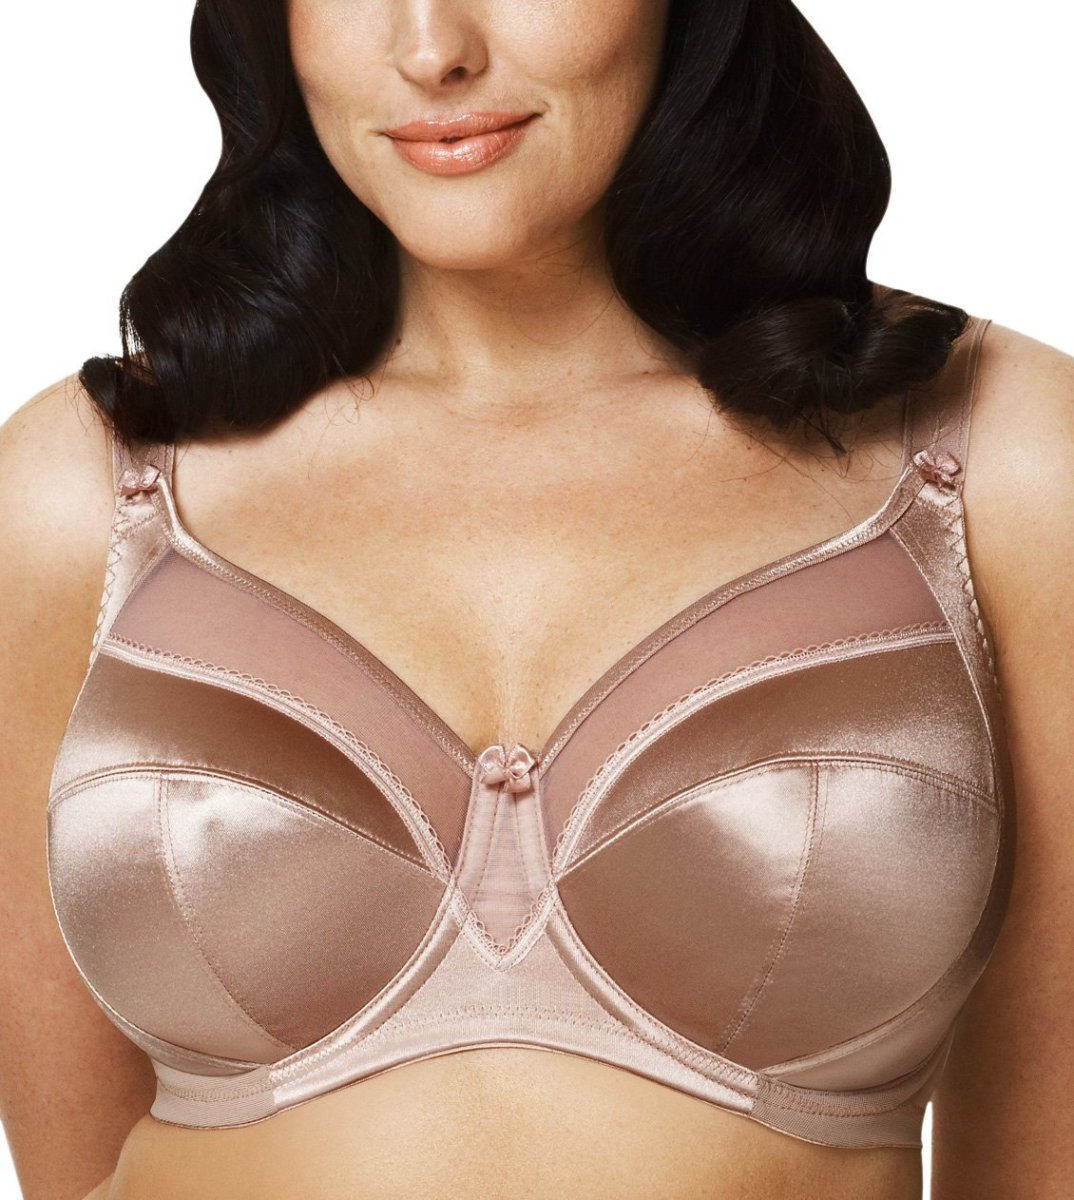 Best Bras For Very Large Breasts